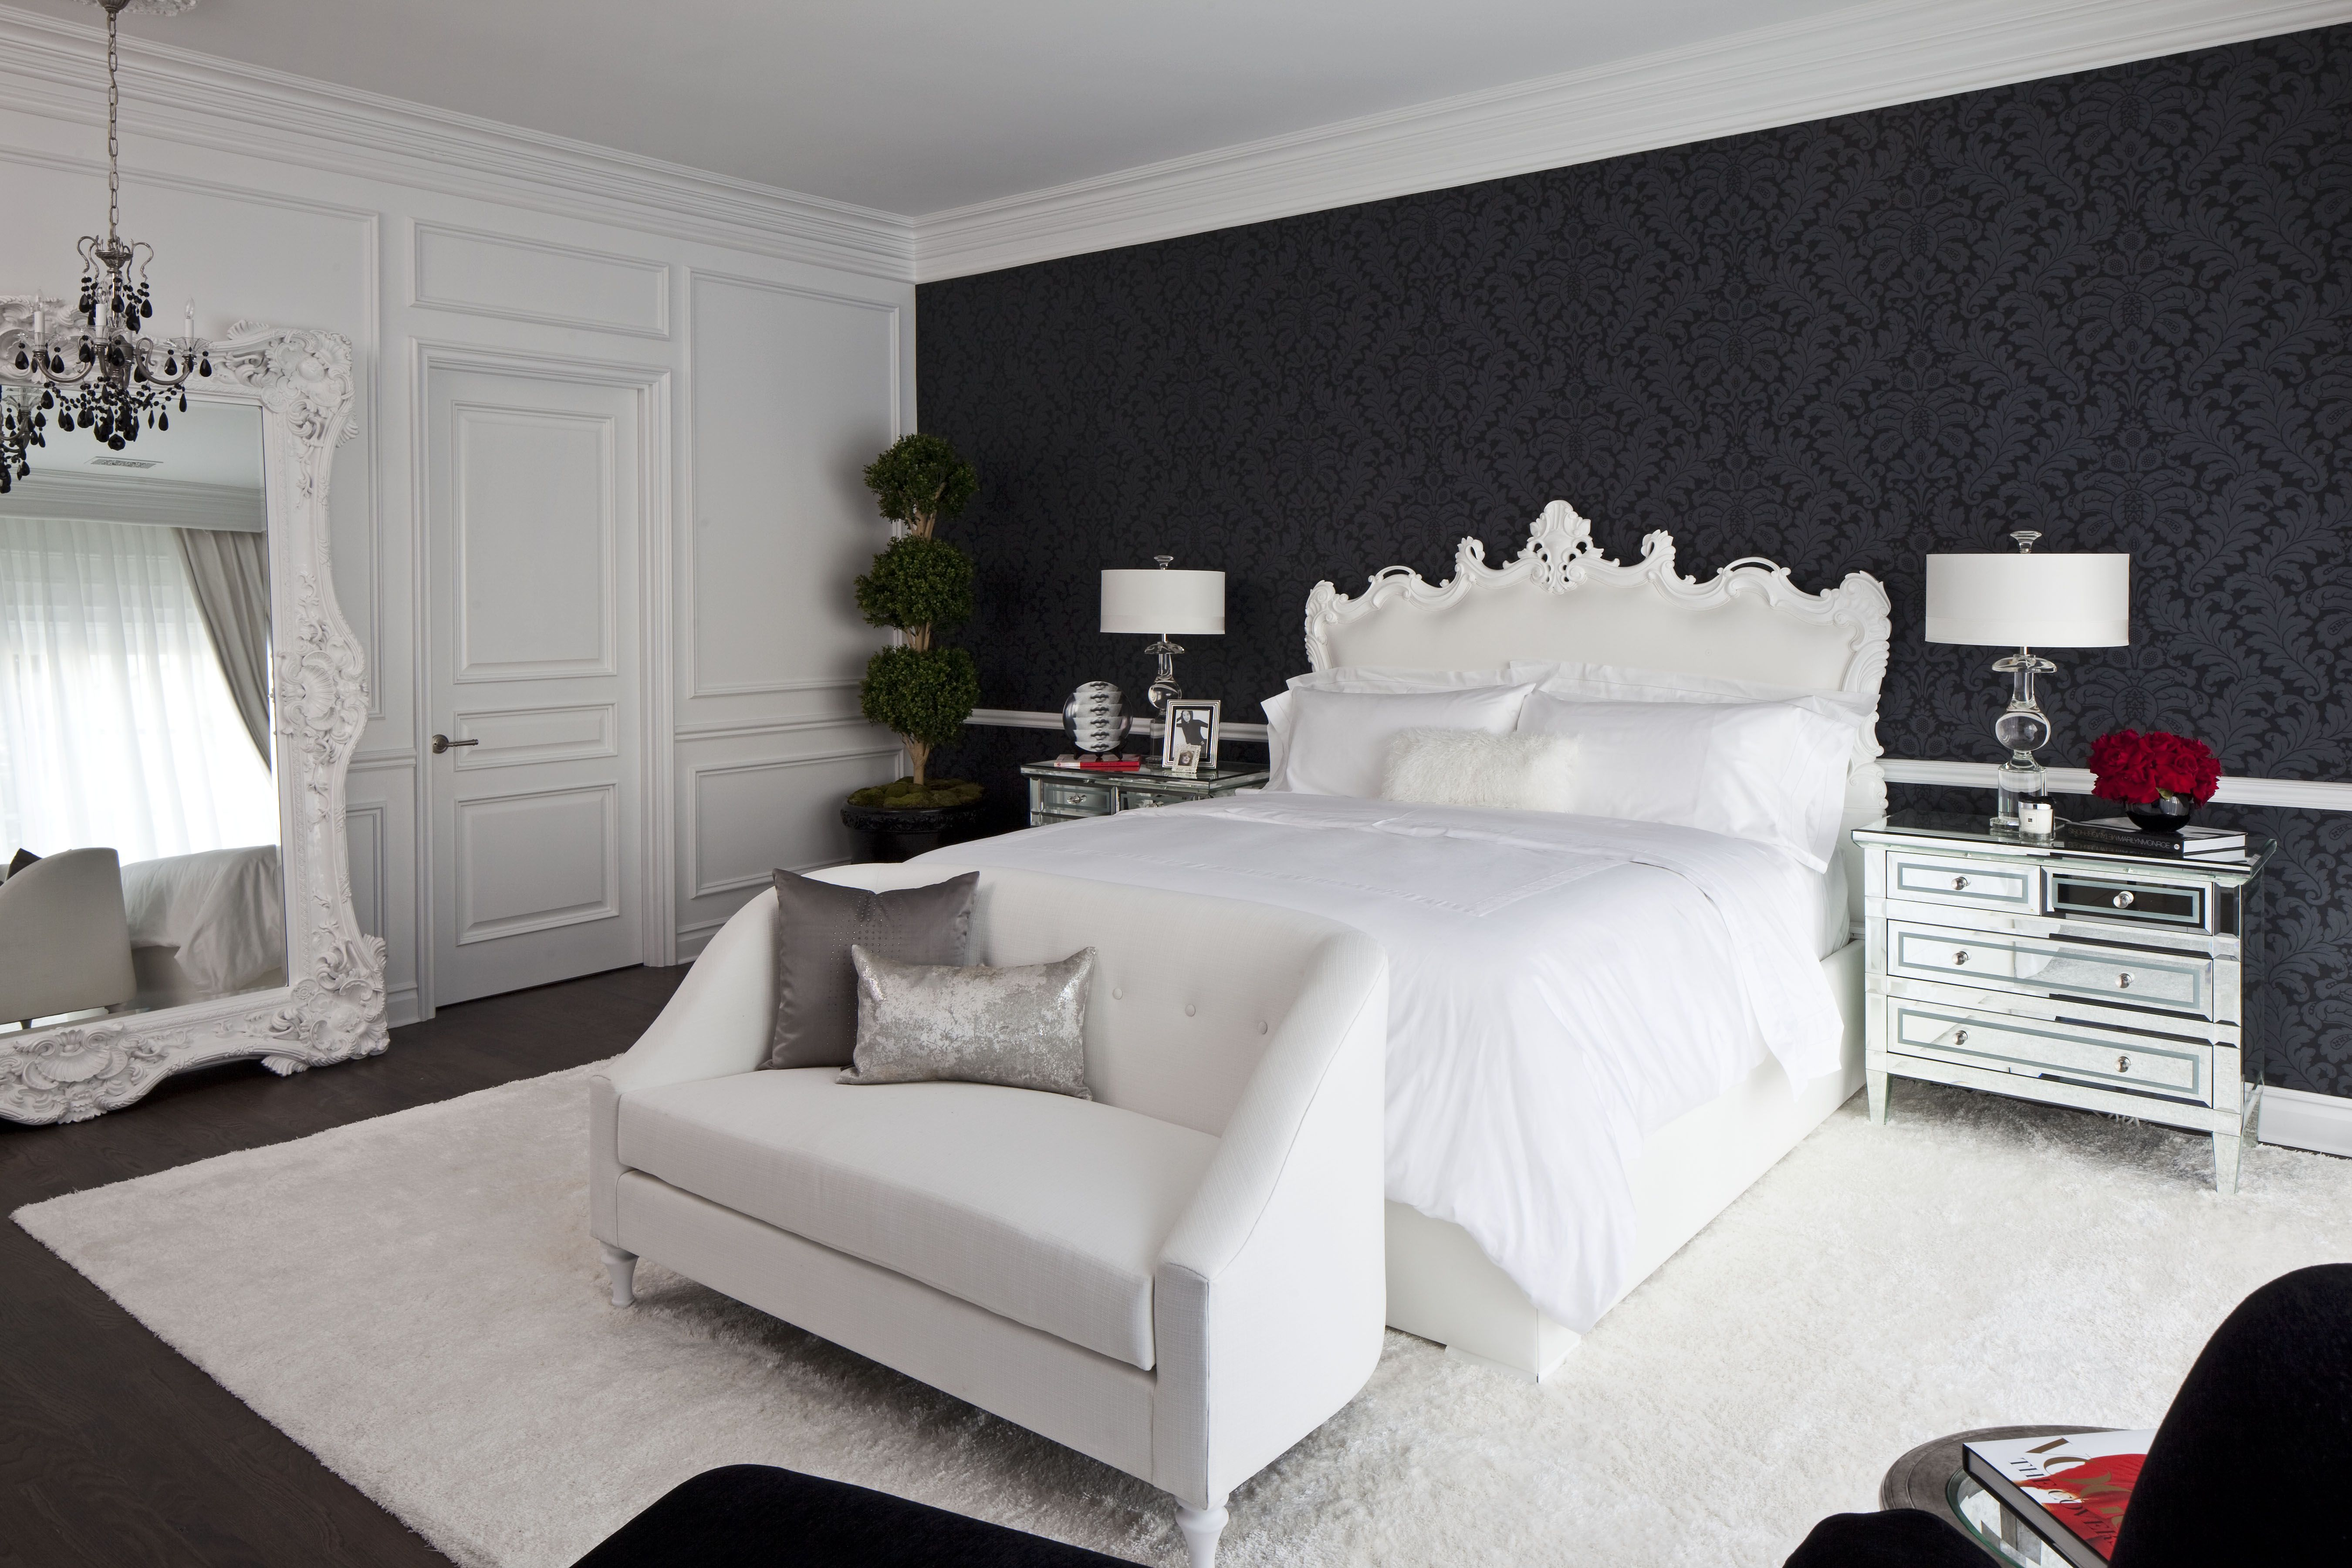 36 Black White Bedrooms Photos And Ideas For Bedrooms With Black White Decor